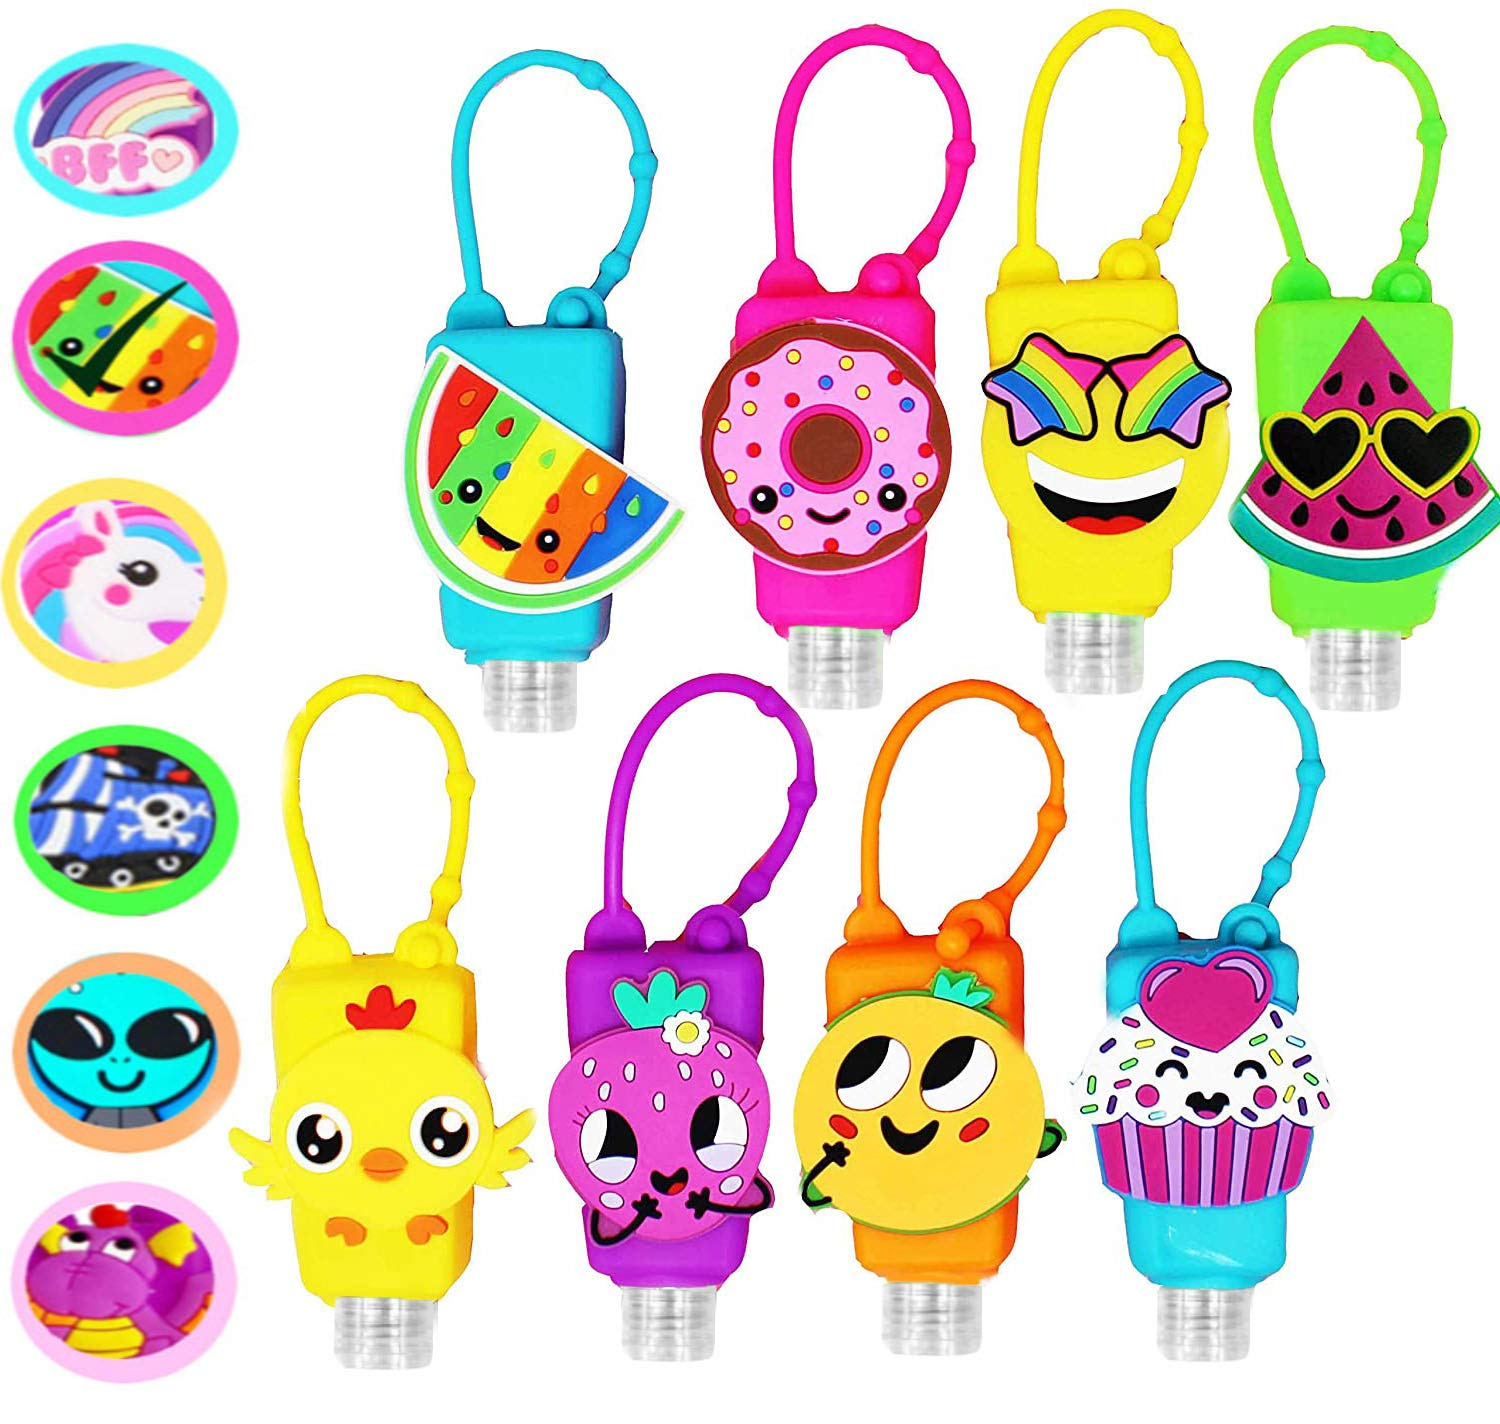 KINIA hand sanitizer carriers, back to school shopping